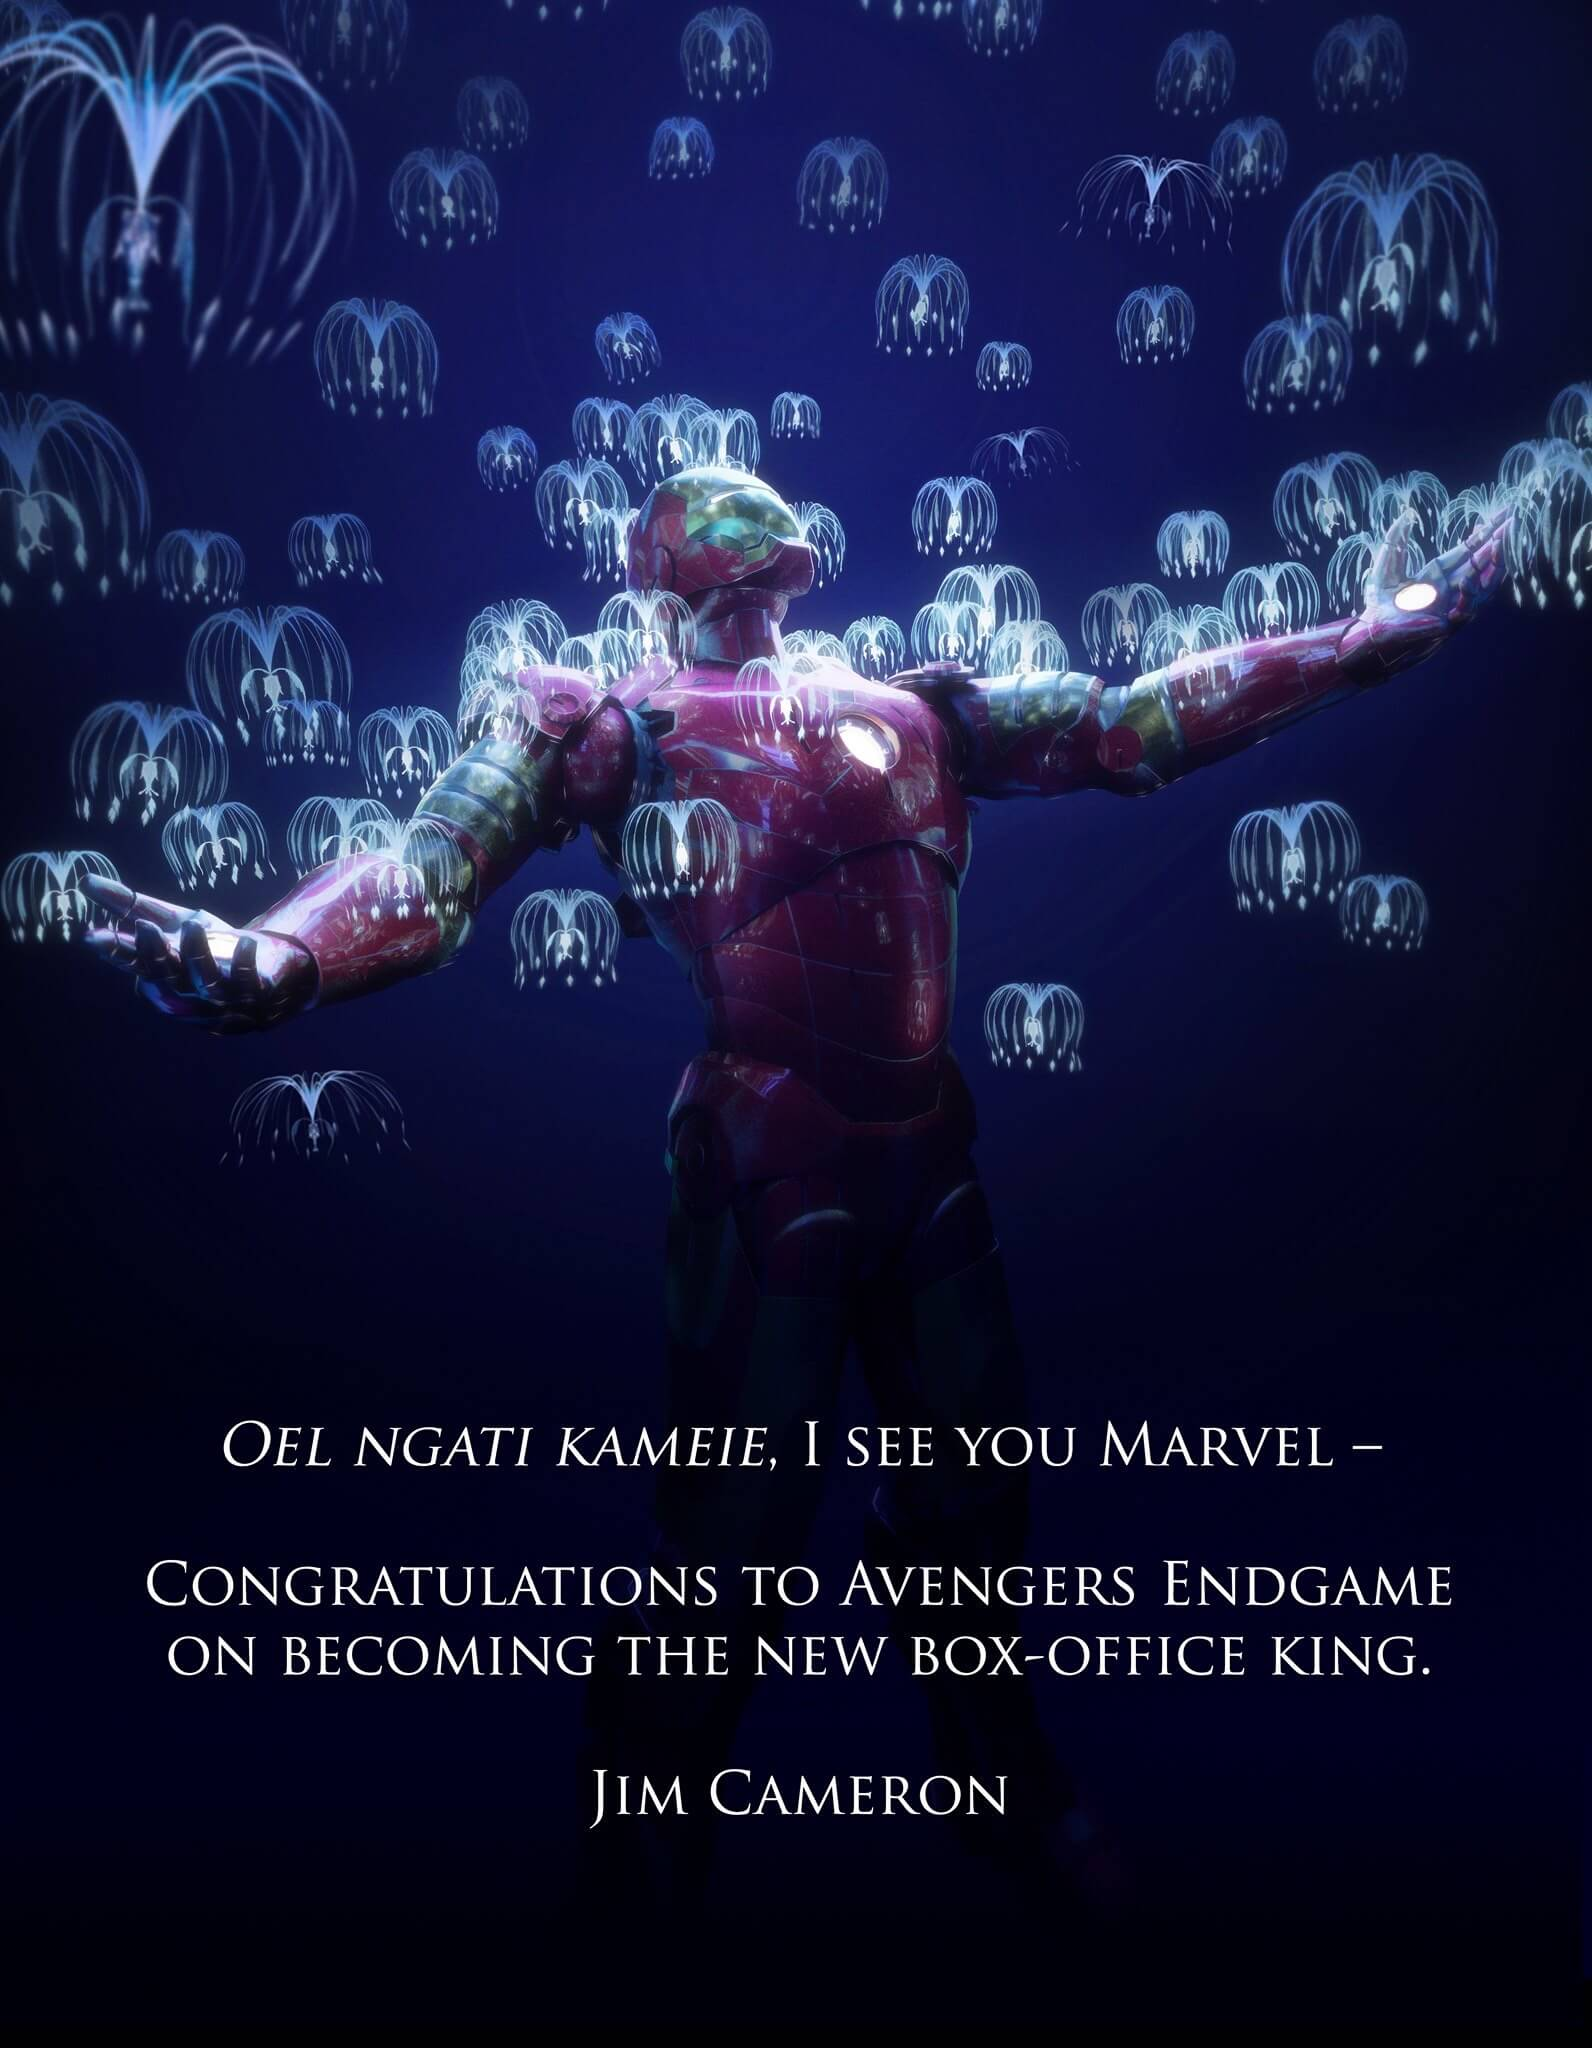 """Oel ngati kameie. I see you Marvel. Congratulations to Avengers Endgame on becoming the new box office king."" —Jim Cameron"